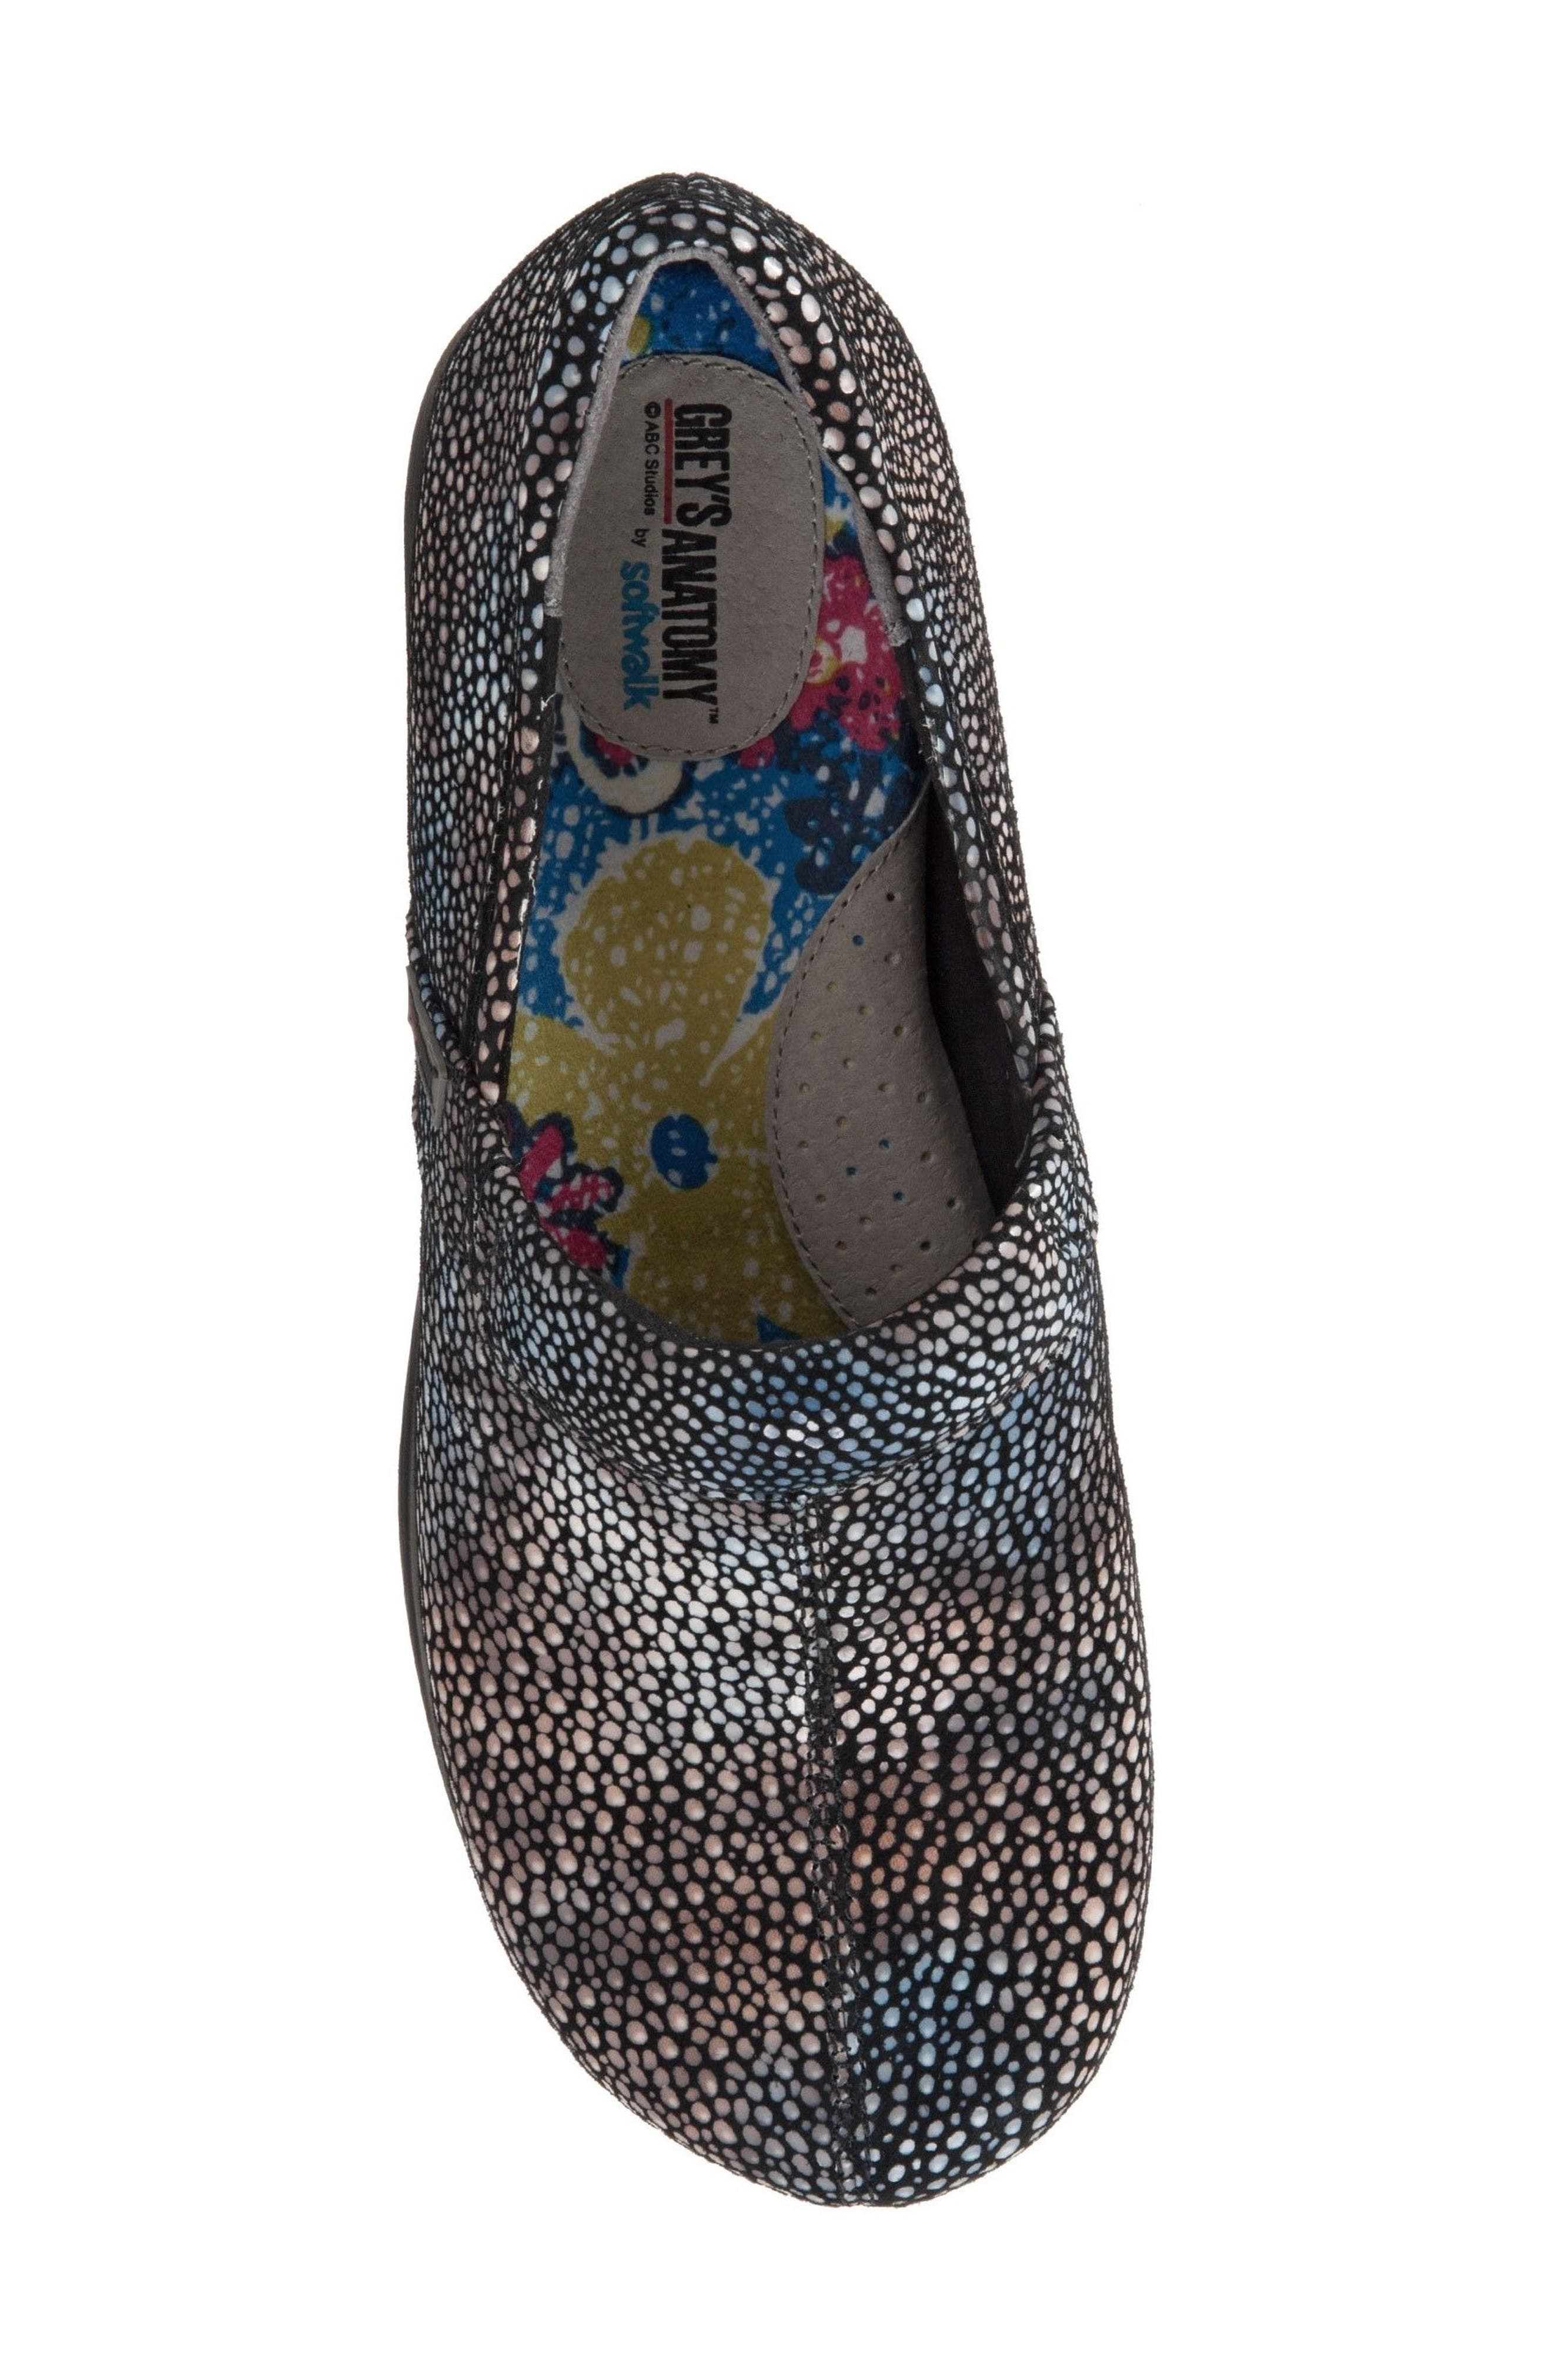 Grey's Anatomy<sup>®</sup> by Softwalk<sup>®</sup> 'Meredith' Leather Clog,                             Alternate thumbnail 5, color,                             Multi Mosaic Leather